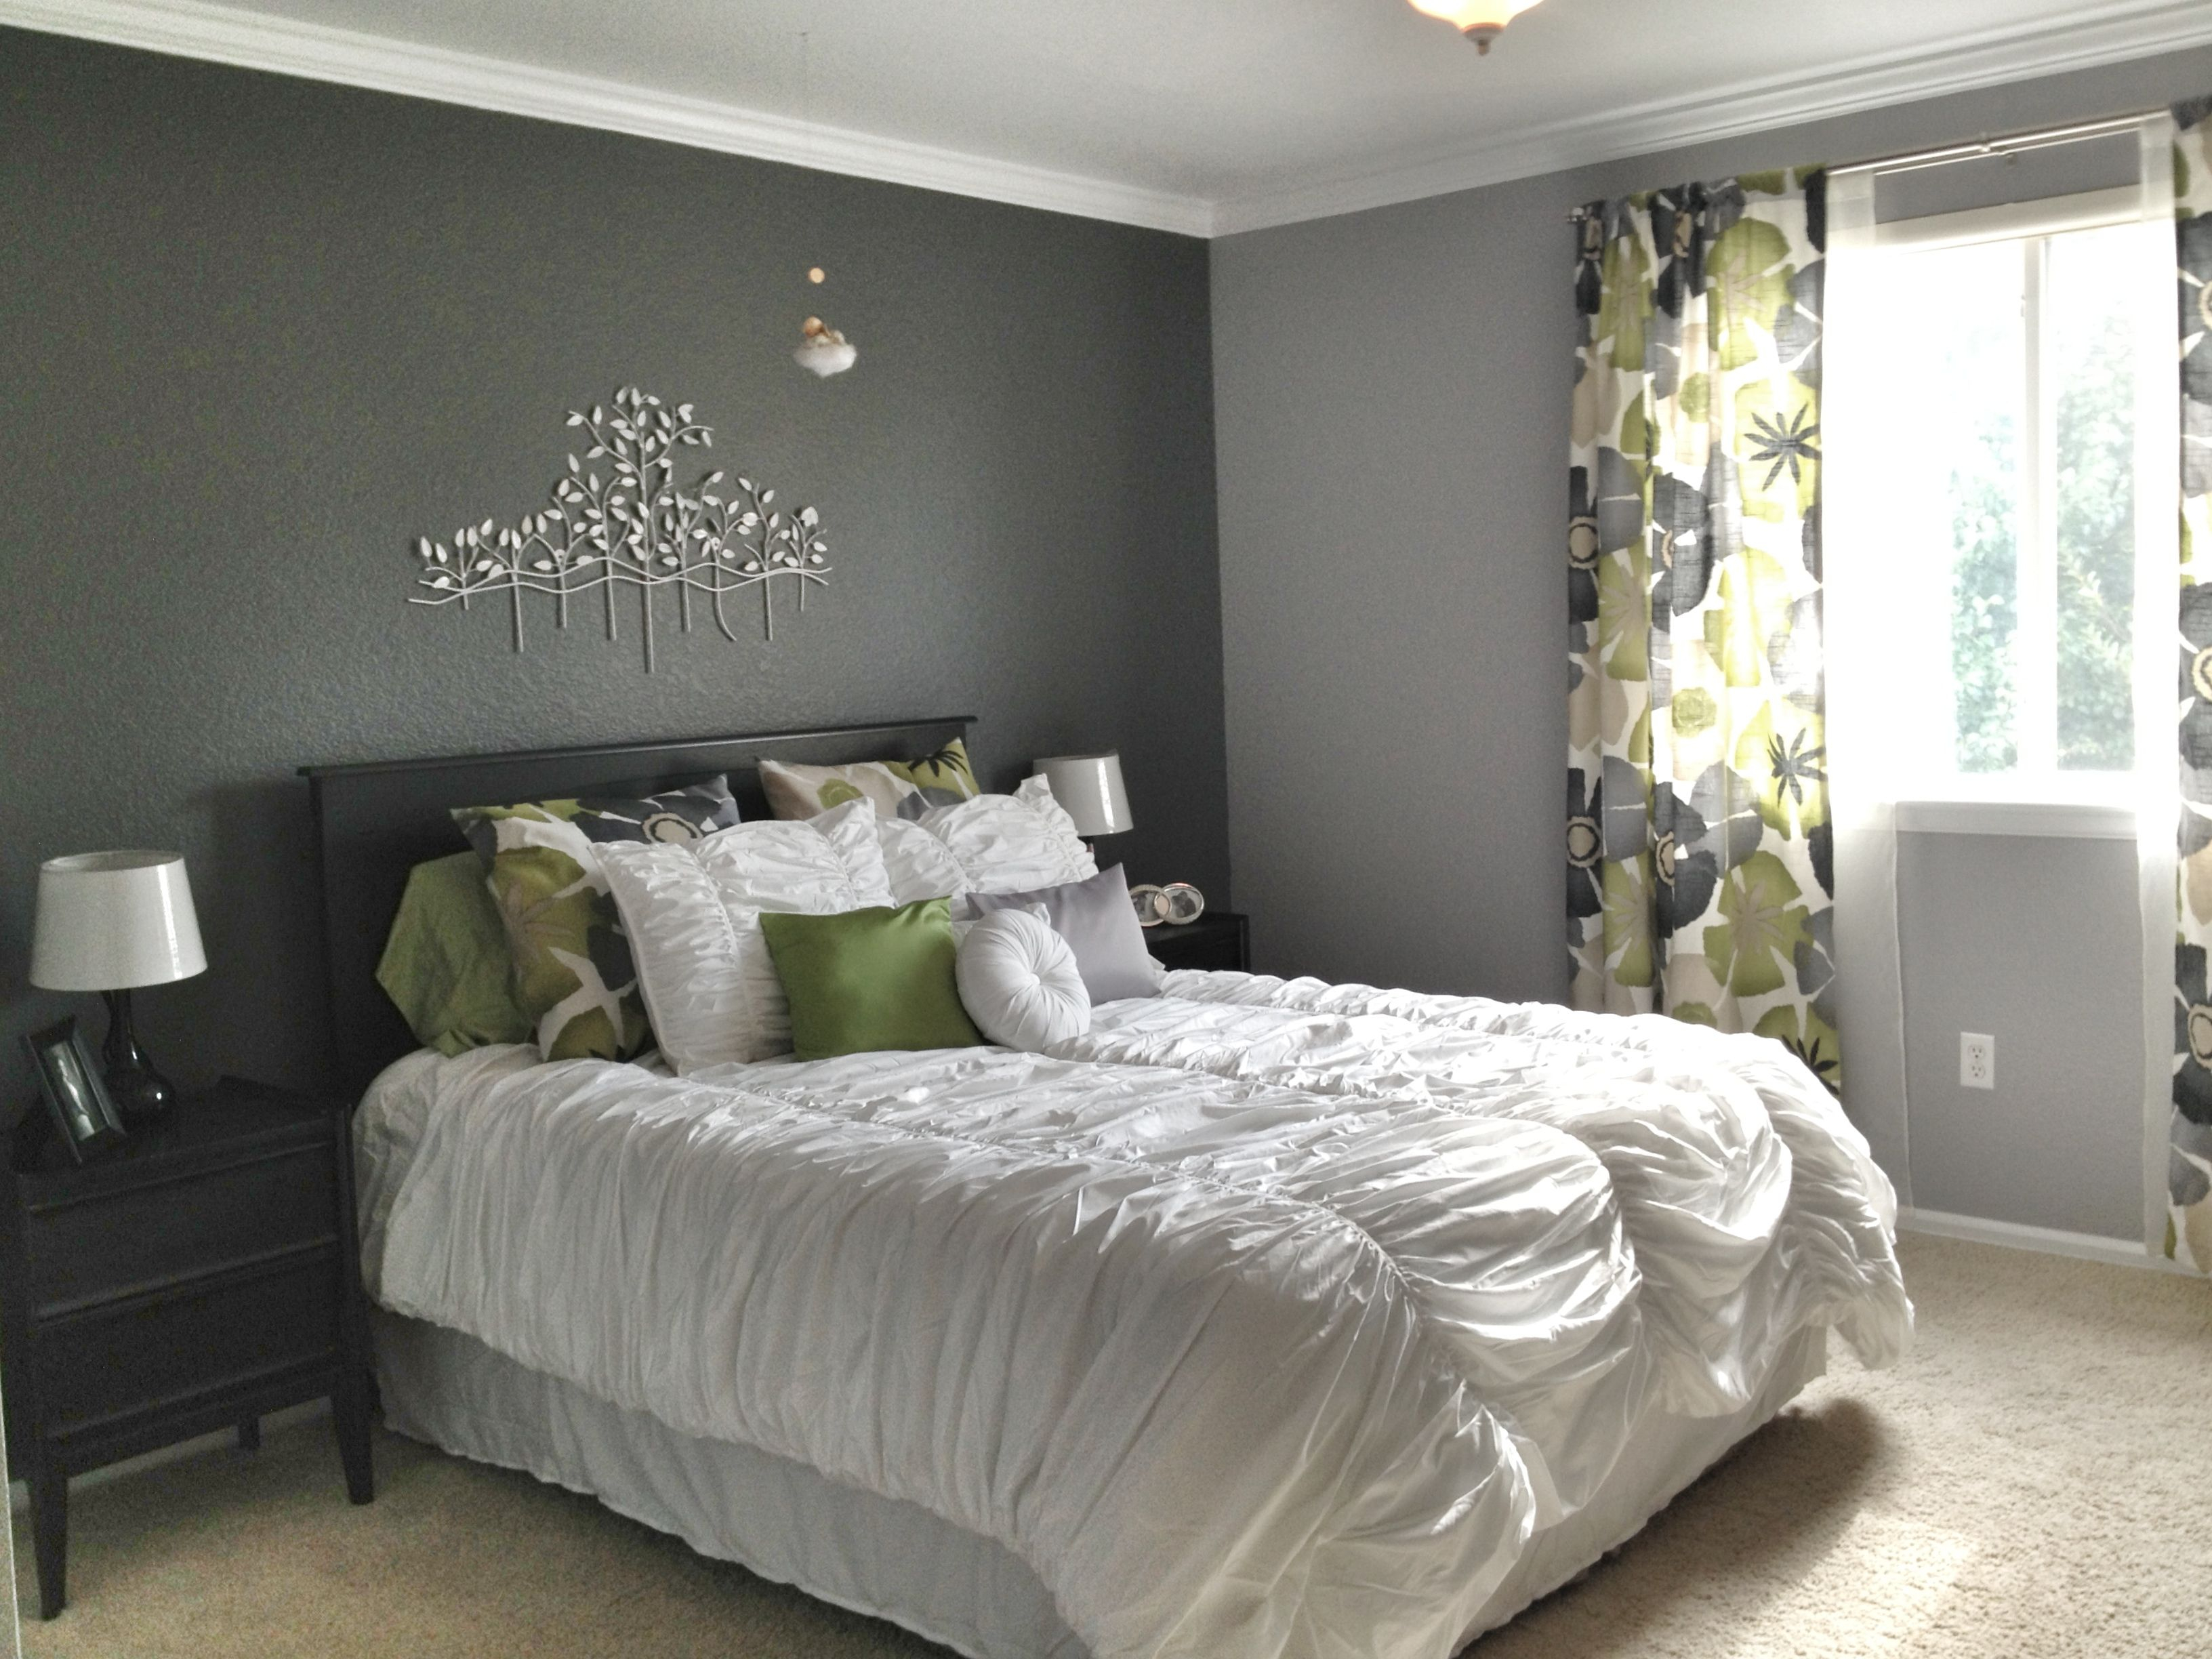 Inspirational Grey Master Bedroom Ideas Gray Master Bedroom Images for Bedroom Gray